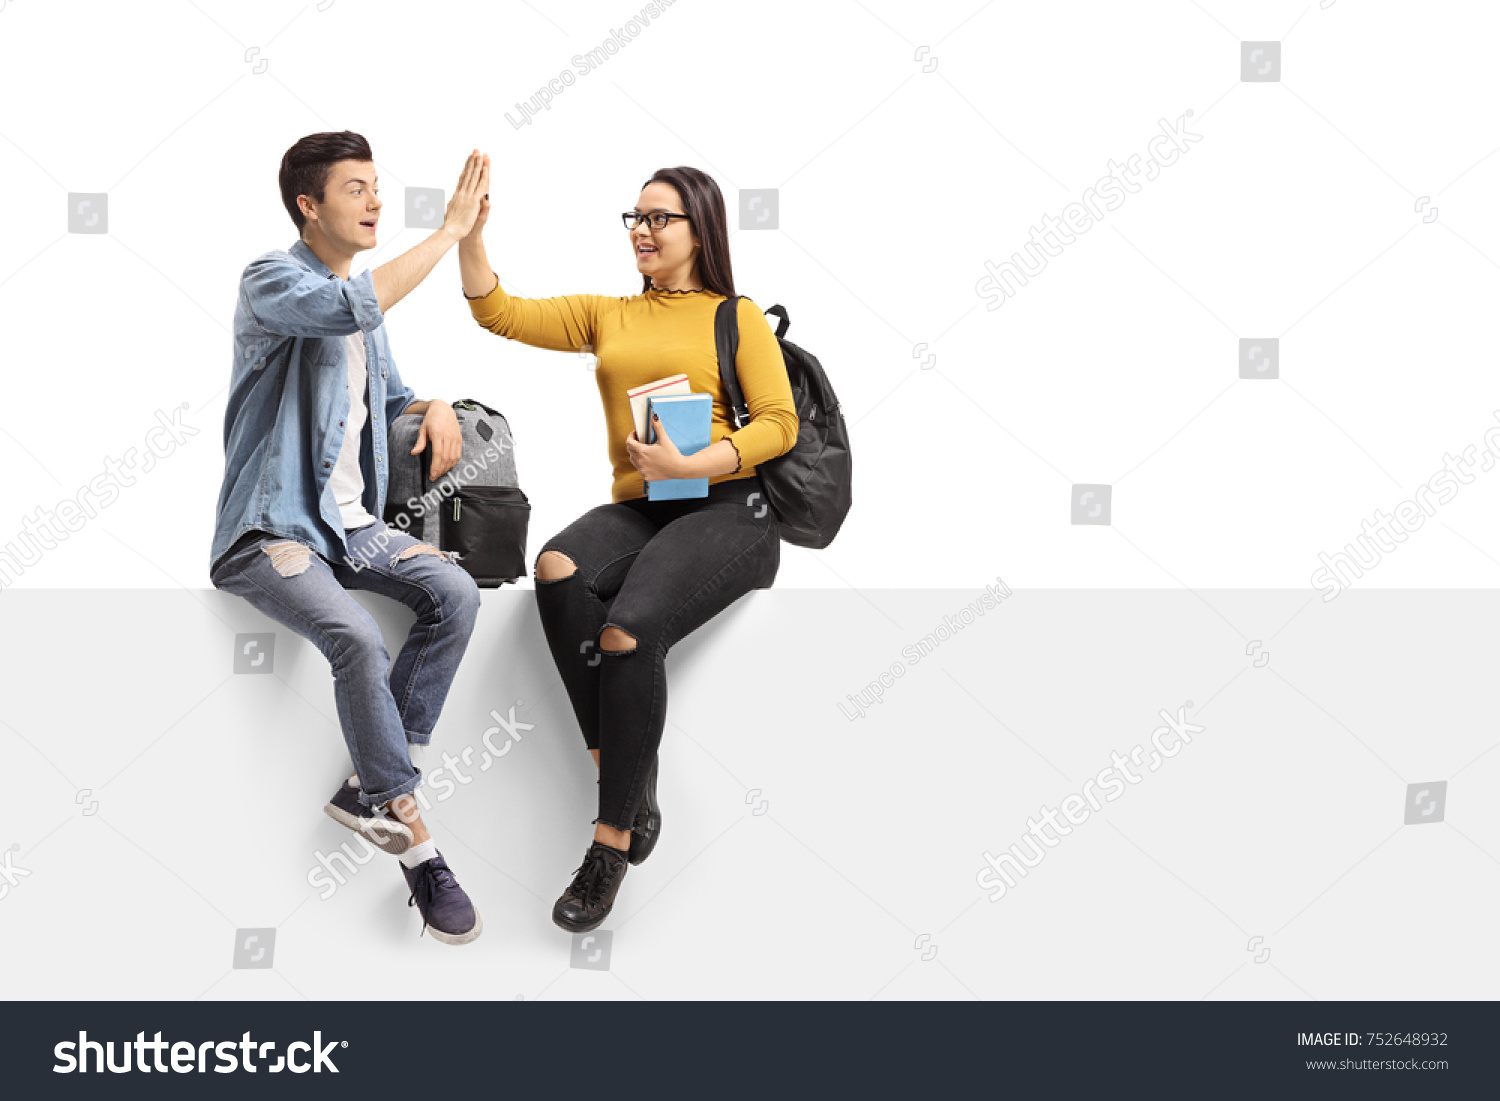 Teenage students sitting on a panel and high-fiving each other isolated on white background